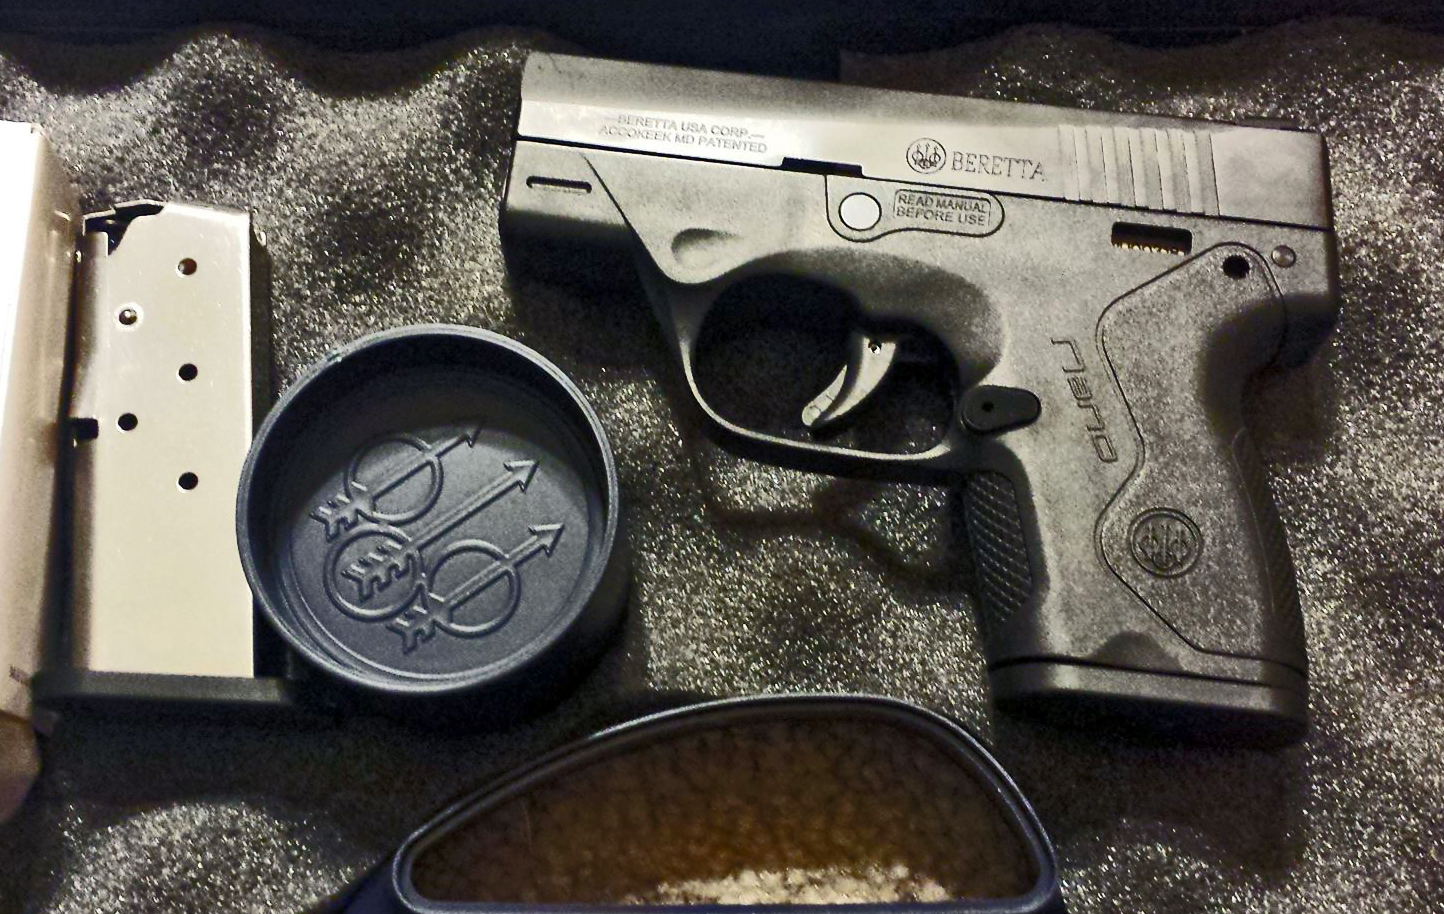 [FIREARM REVIEW] Beretta Nano 9mm Review for Concealed Carry